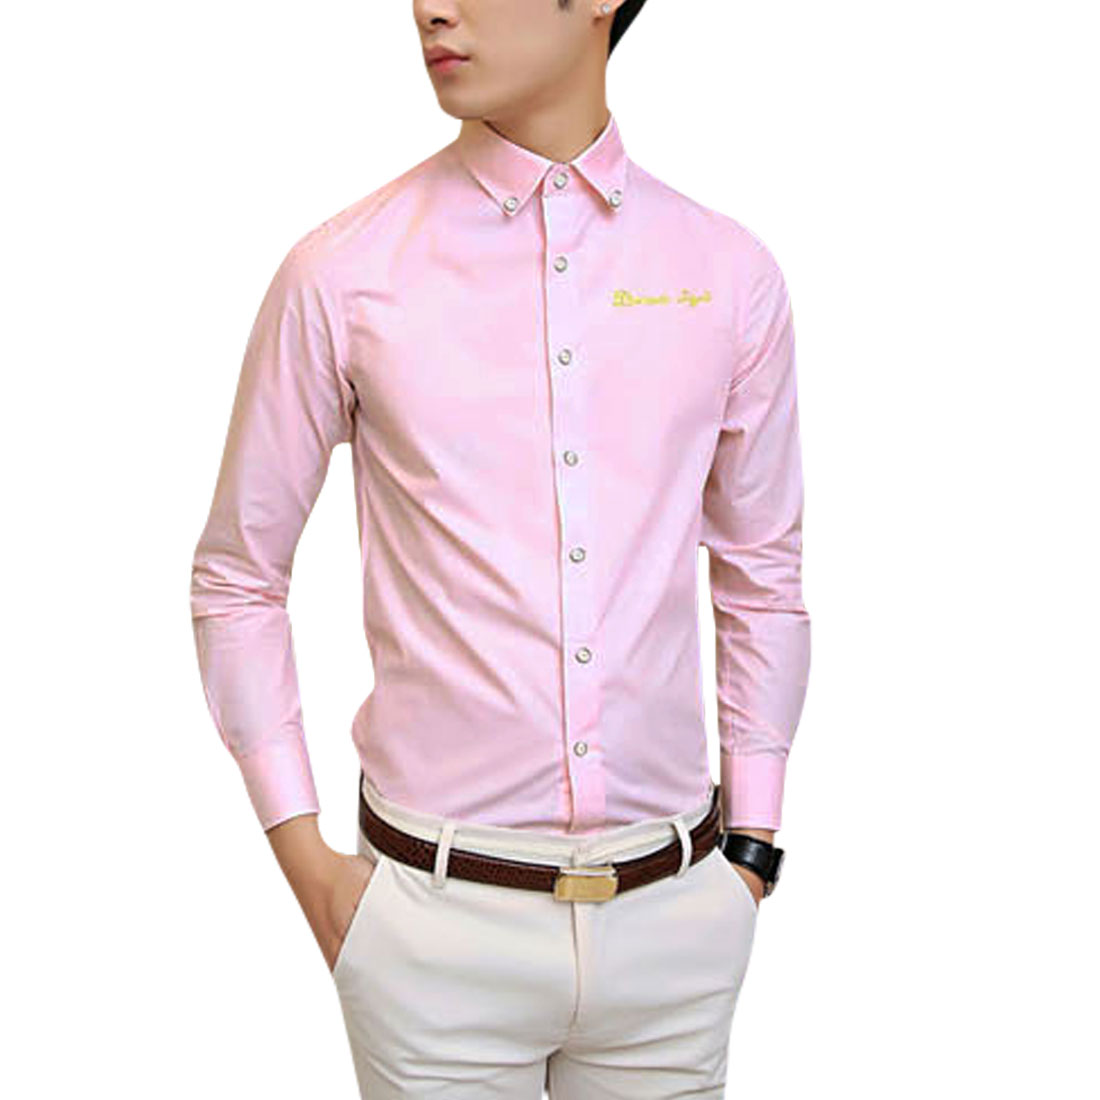 Azzuro Men's Button Cuffs Embroidery Letters Detail Casual Shirt Pink (Size M / 40��